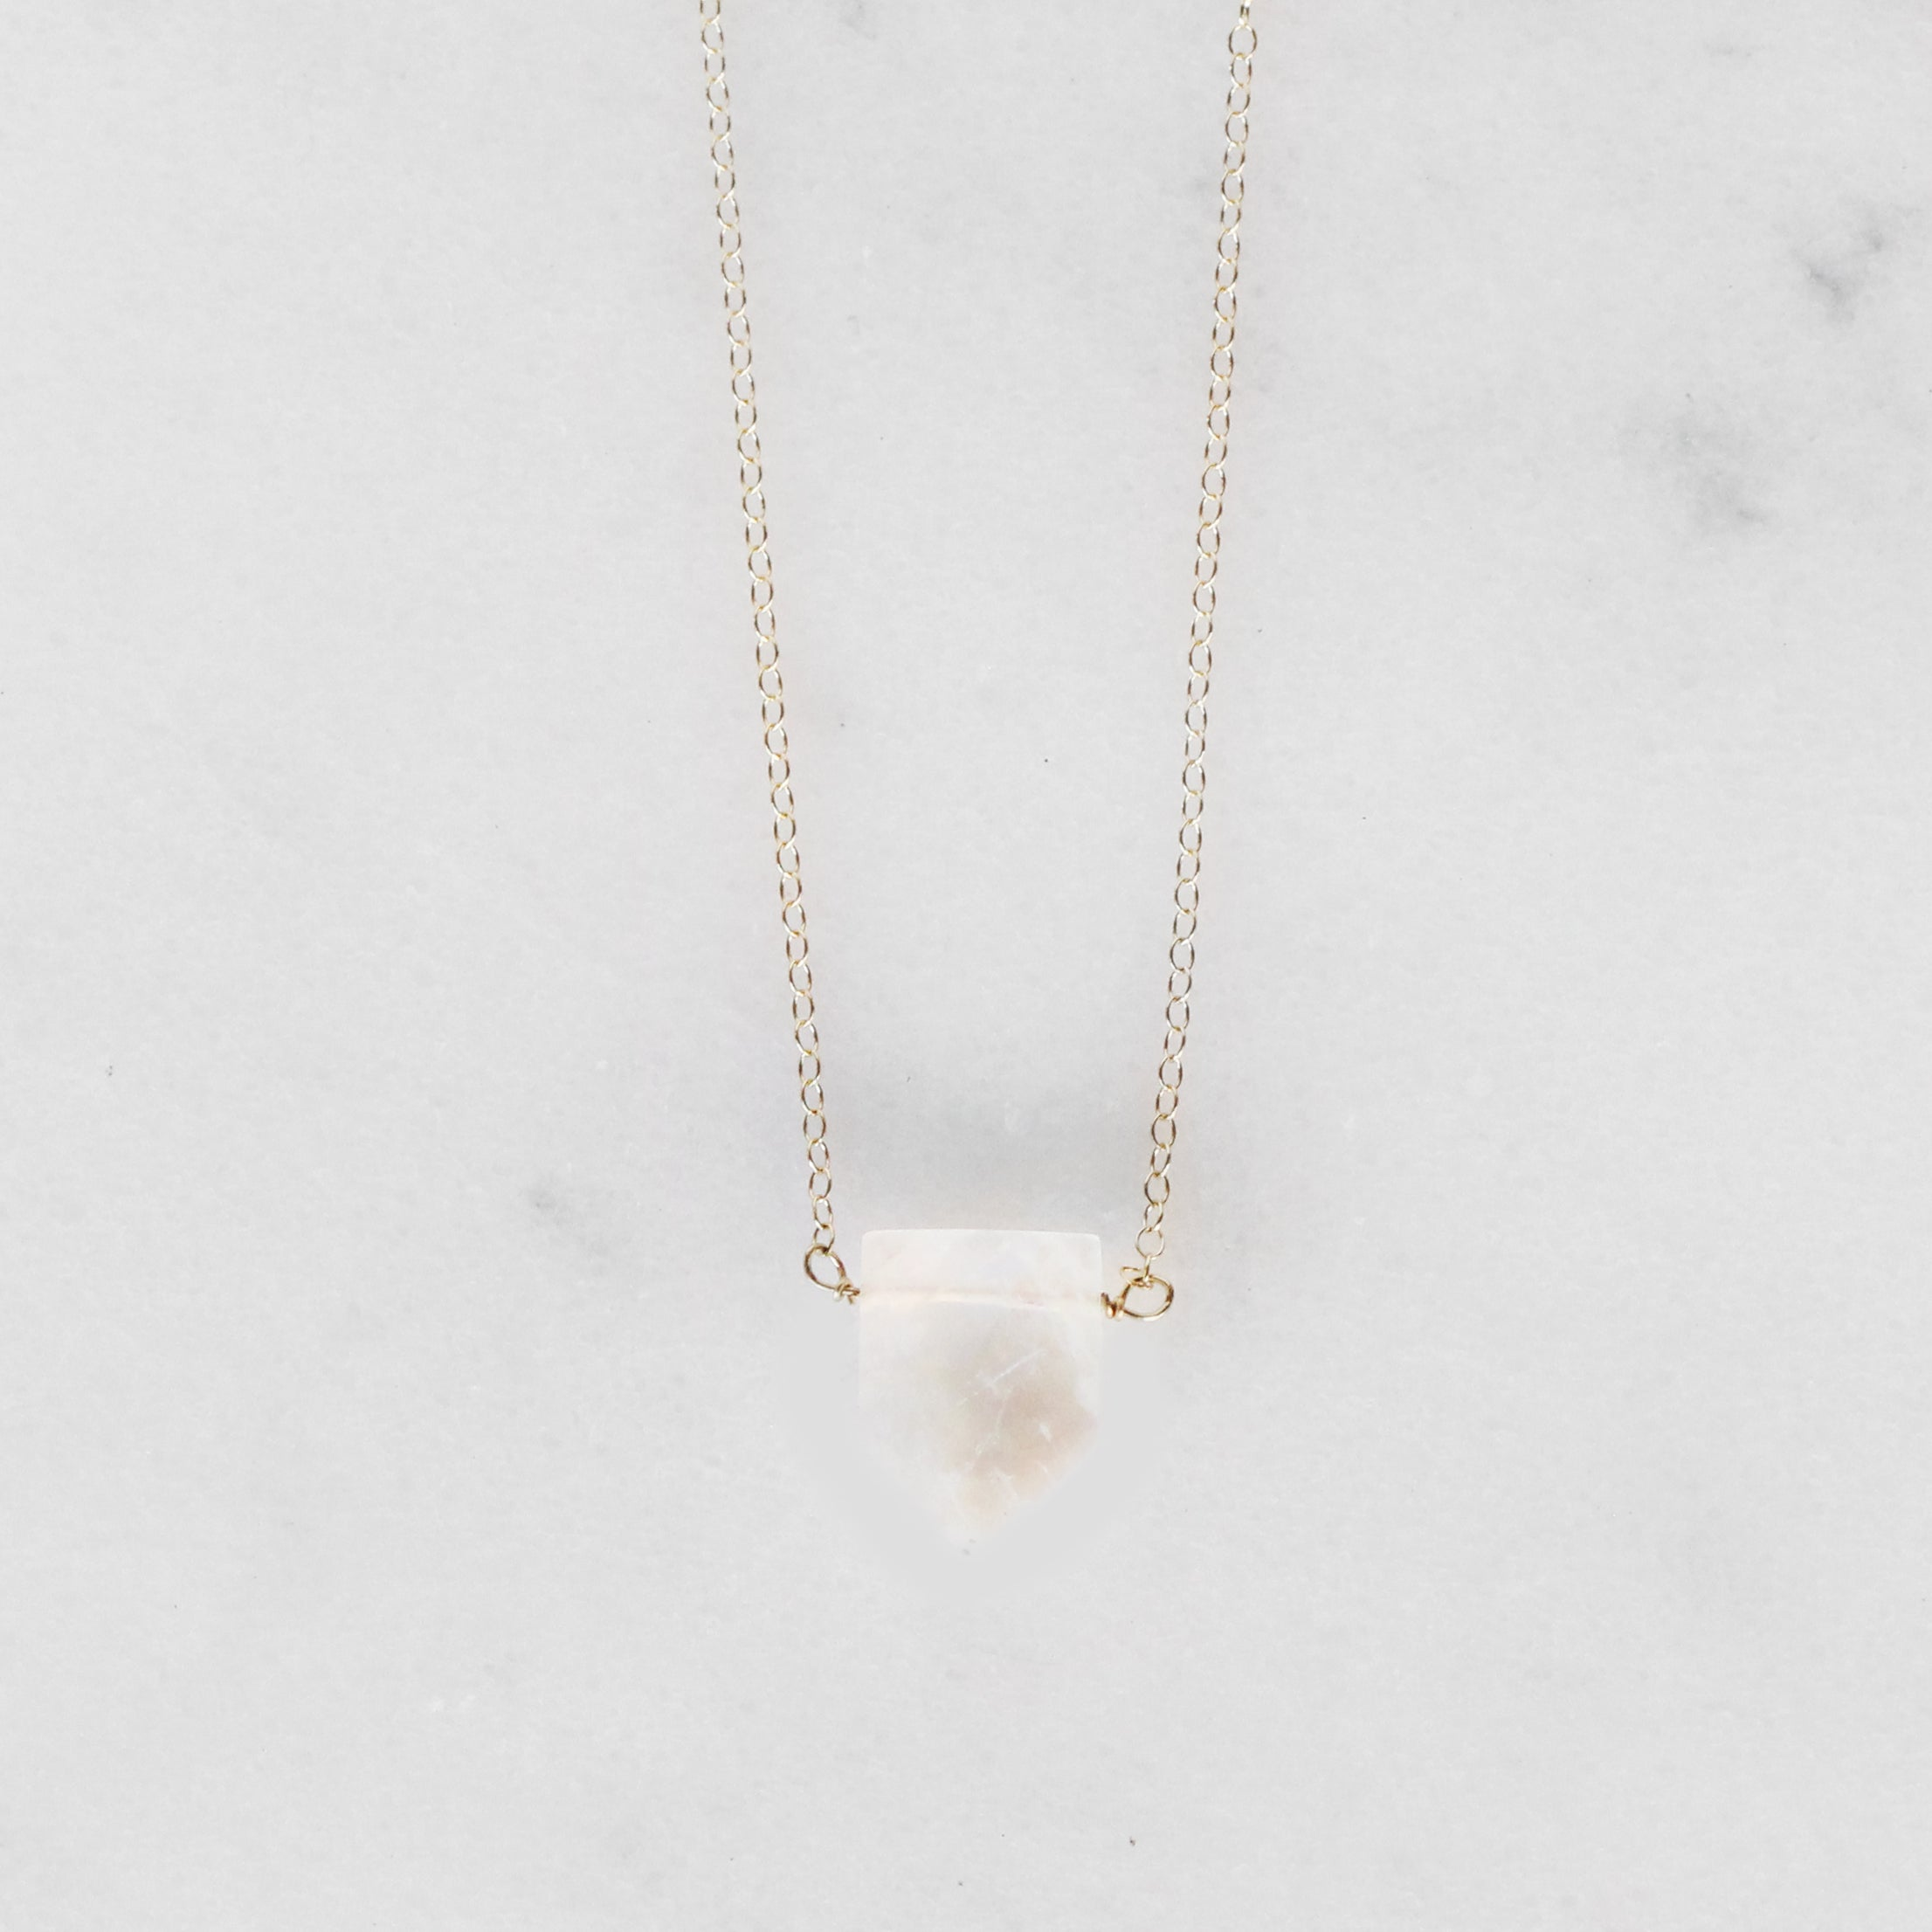 Moonstone Geometric Gemstone Pendant Necklace with 14k Gold Fill or Sterling Silver Chain - Celestial Diamonds ® by Midwinter Co.